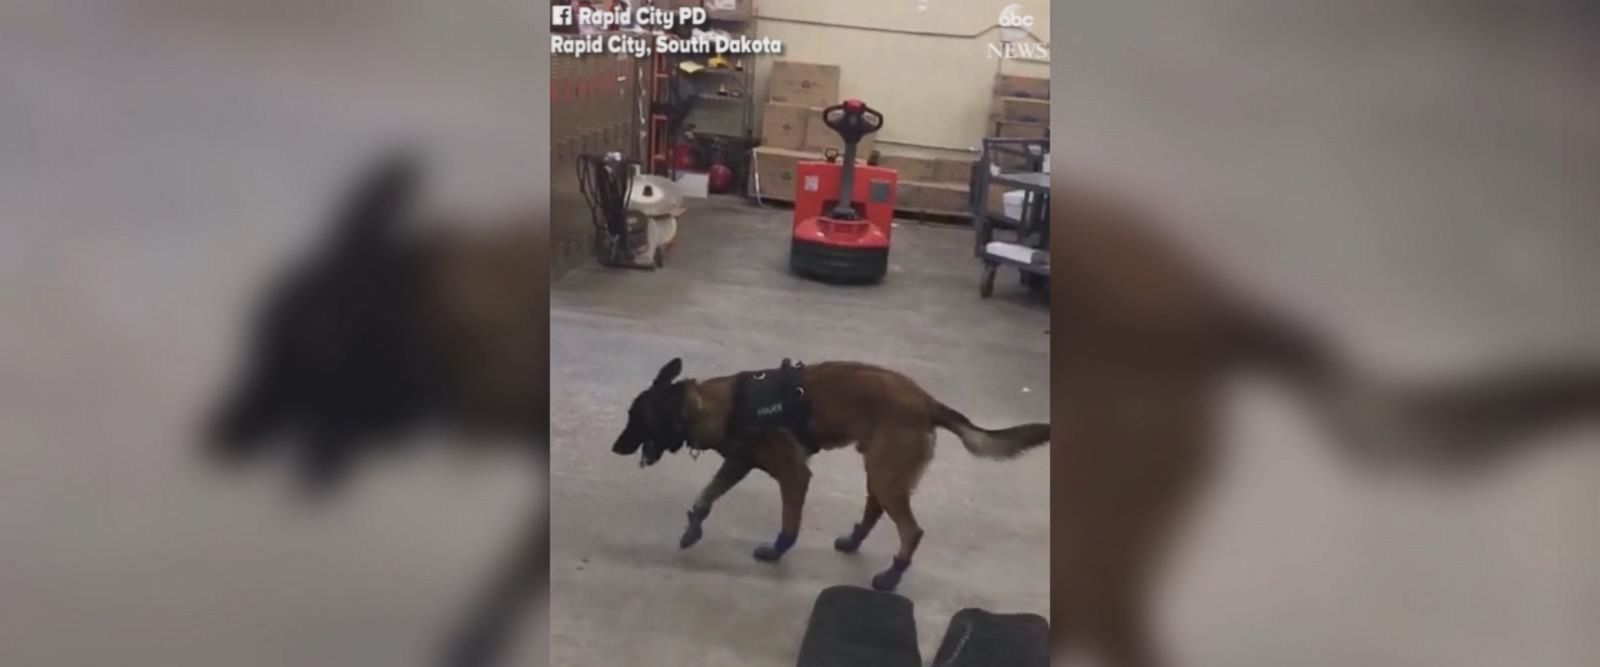 VIDEO: K-9 gets new cold weather gear